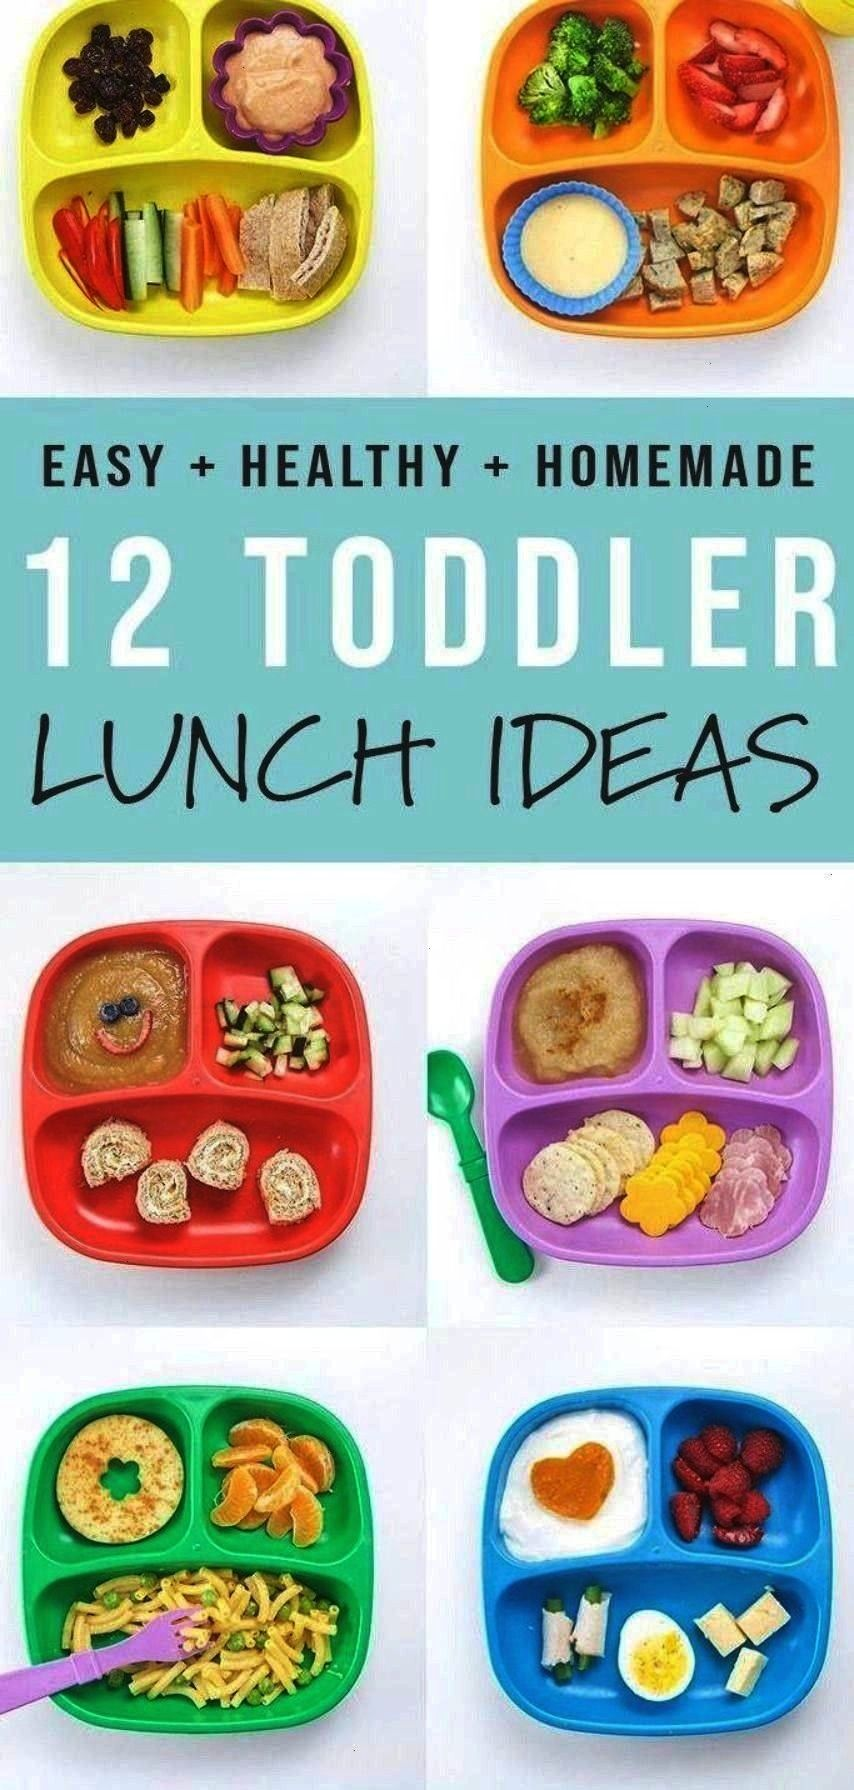 Lunches are healthy, fruit and veggie packed, balanced meals that will be devoured by your toddler